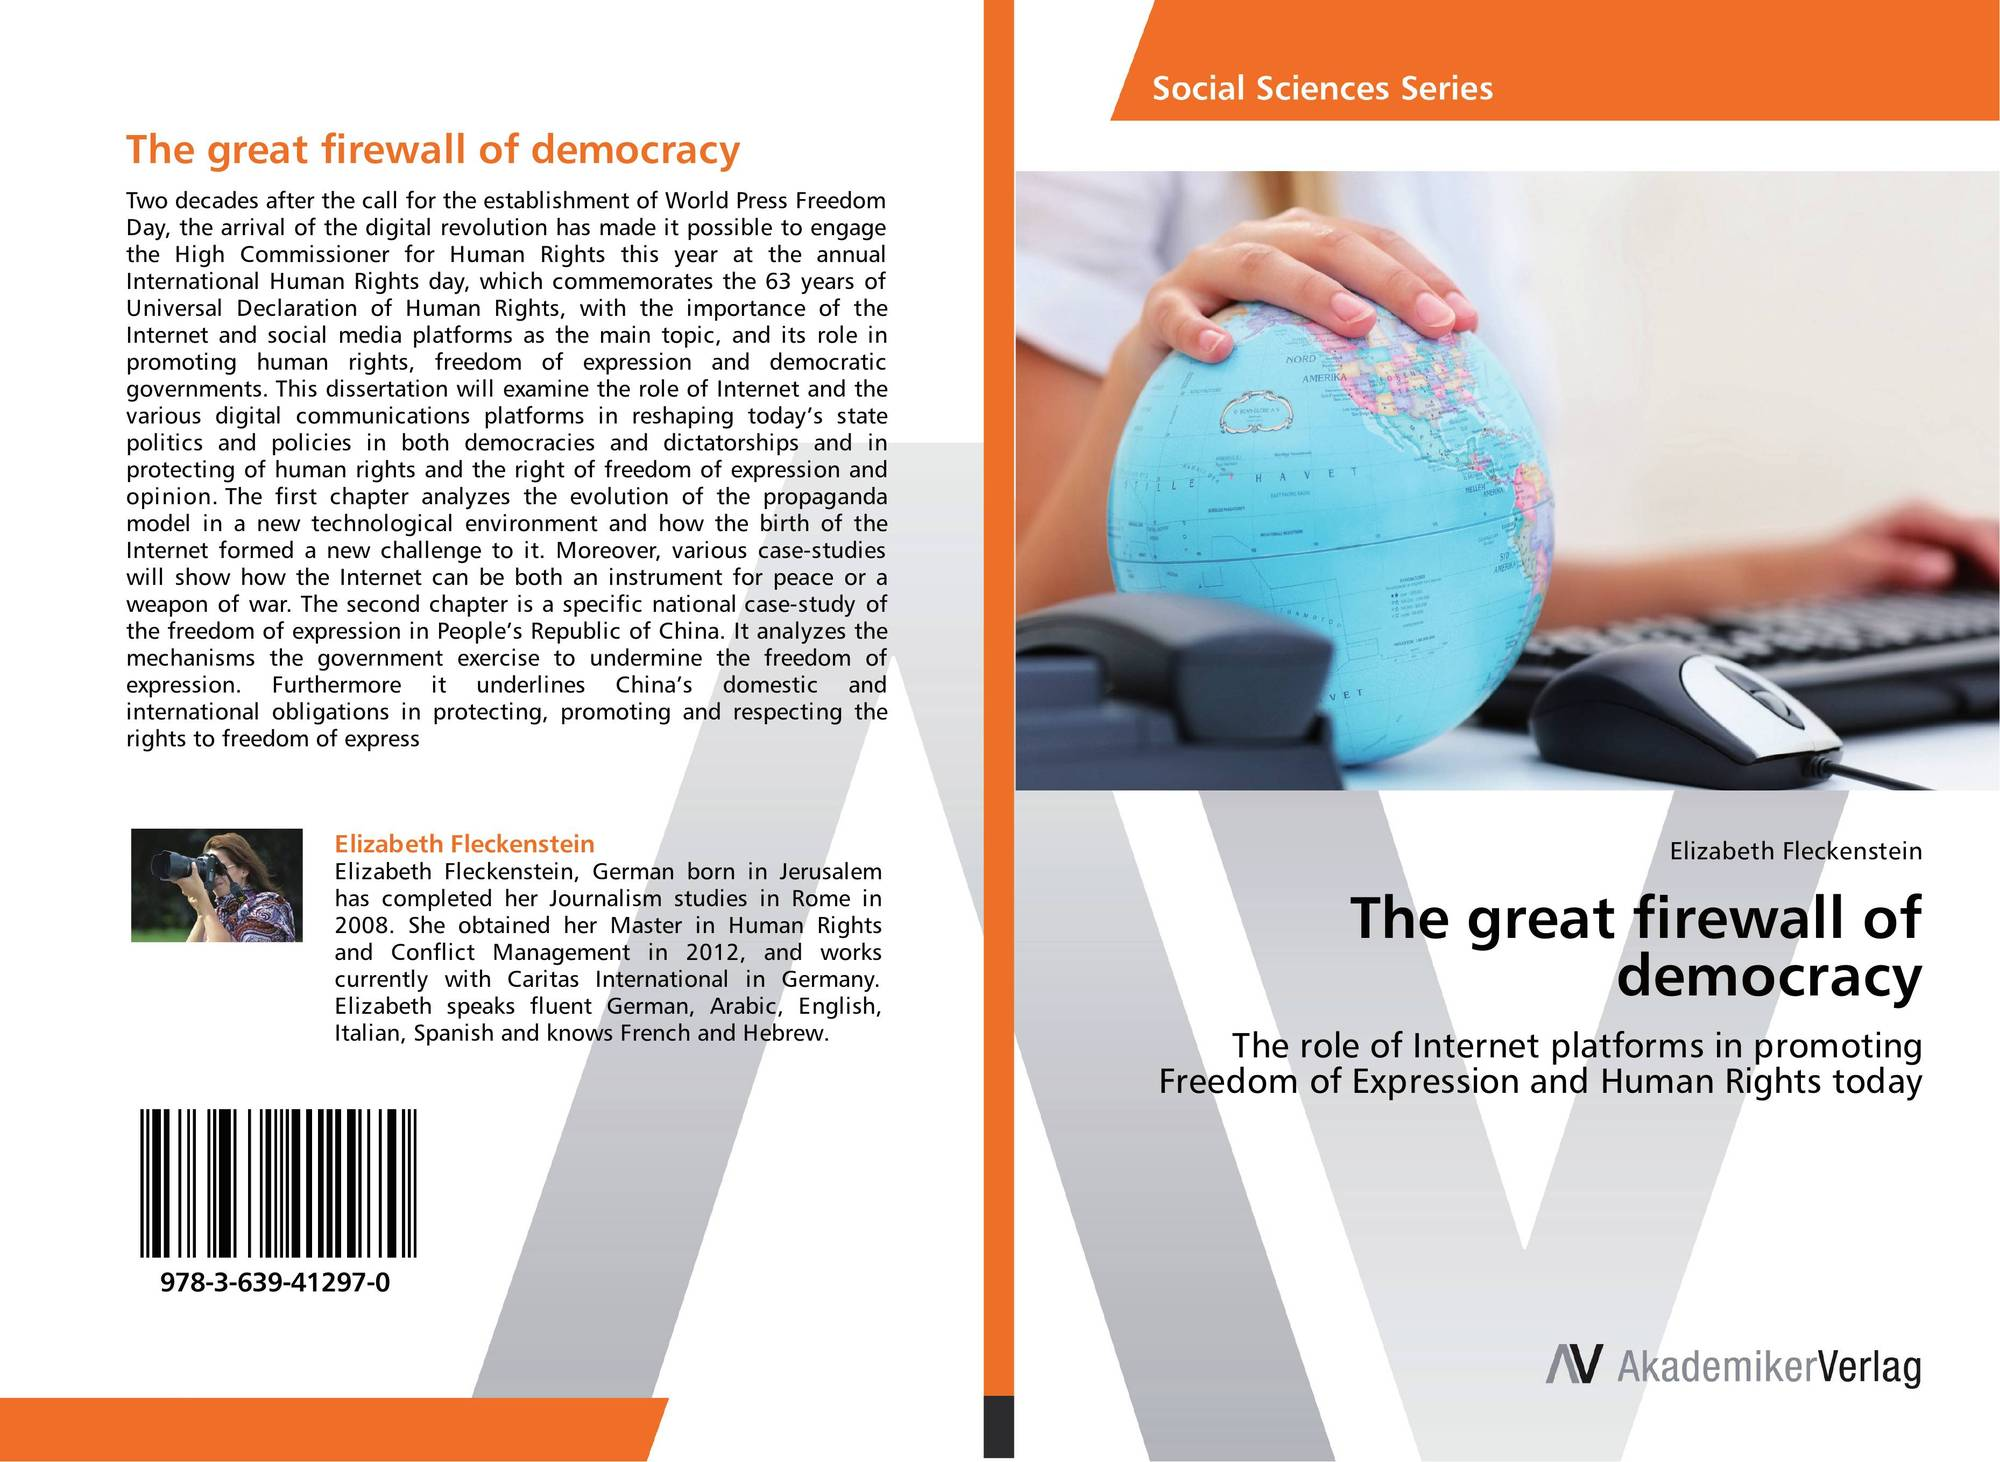 an analysis of the topic of the democracy and the protection The growth of the concept of democracy: an analysis the growth of the concept dealt in the project and would contain researchers' understanding of the topic.